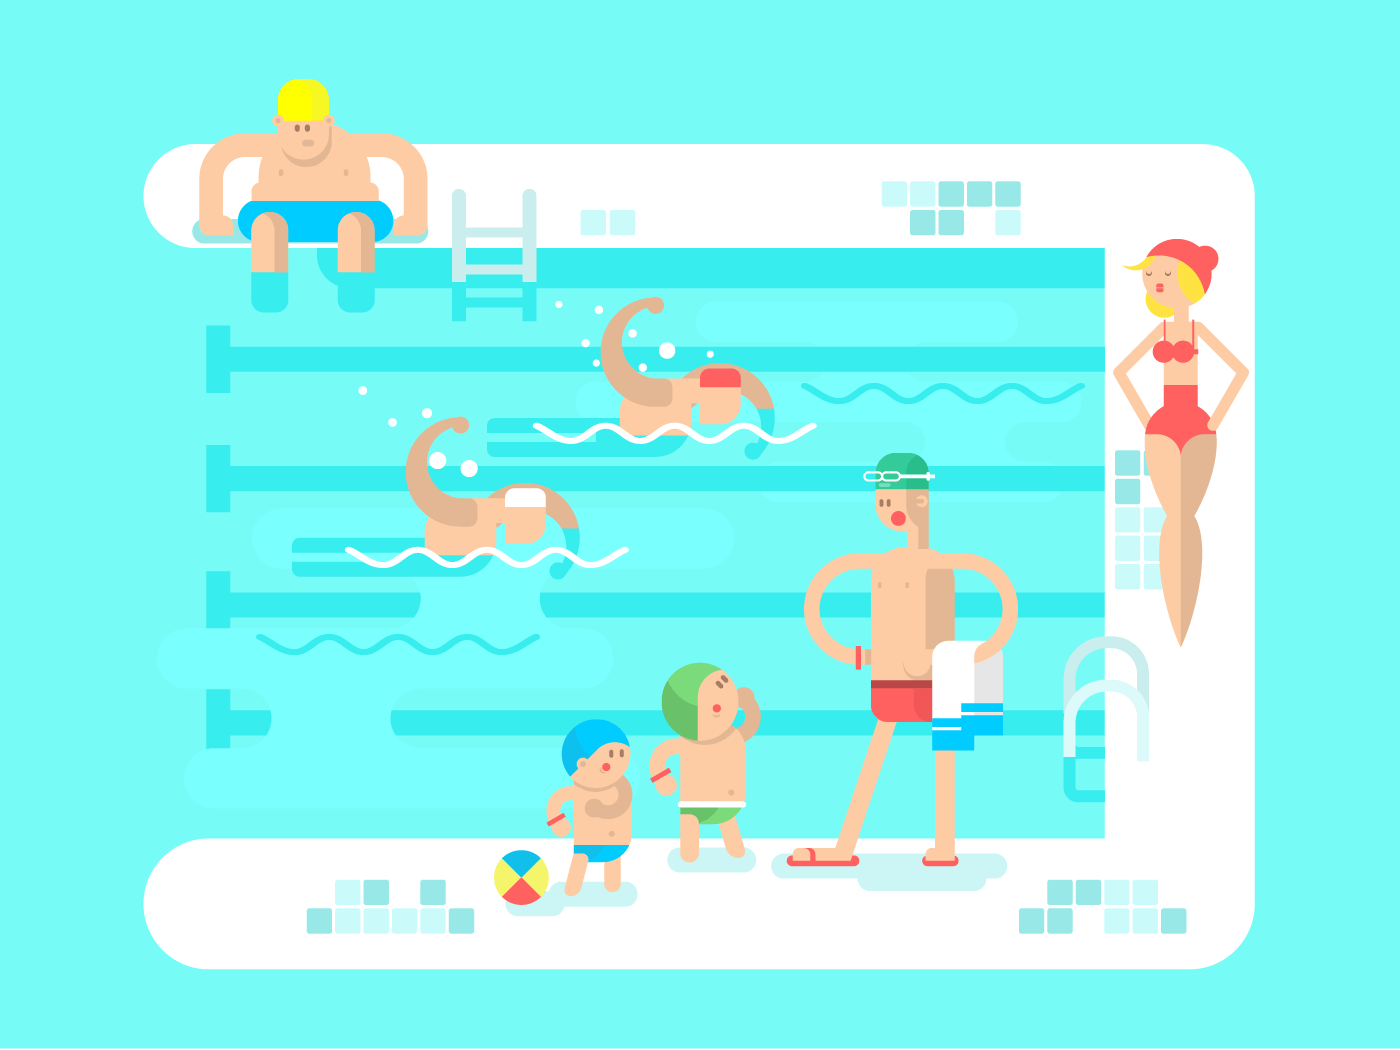 Public swimming pool flat vector illustration